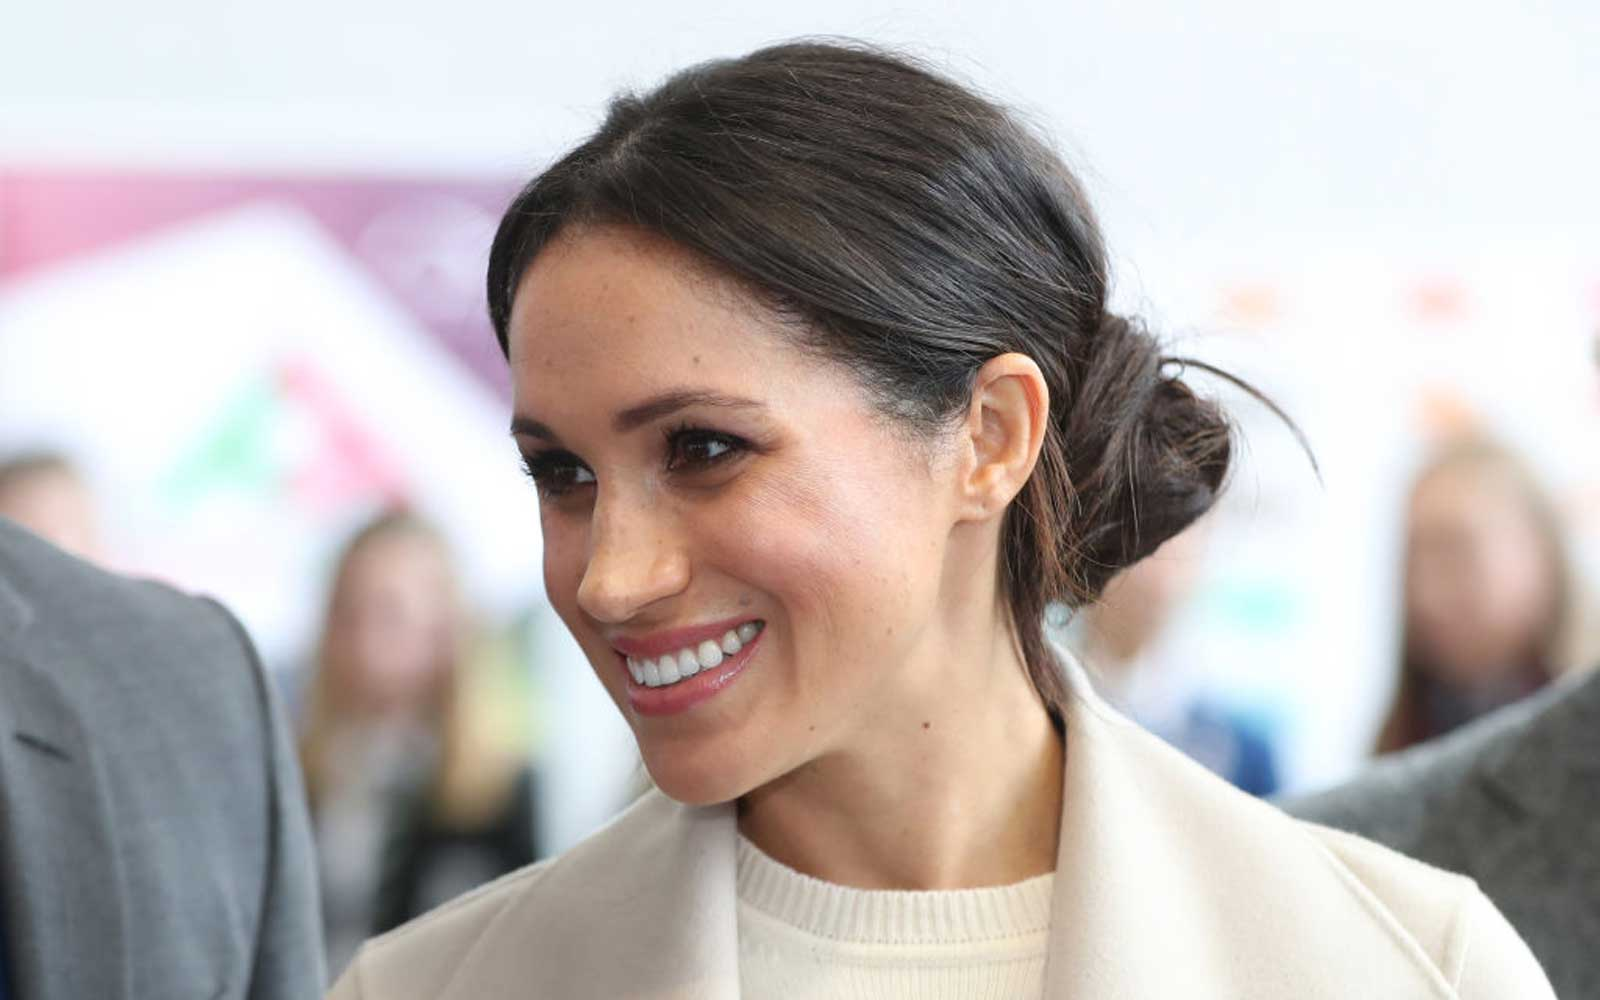 Meghan Markle Just Hinted at Having a Royal Baby of Her Own (Video)